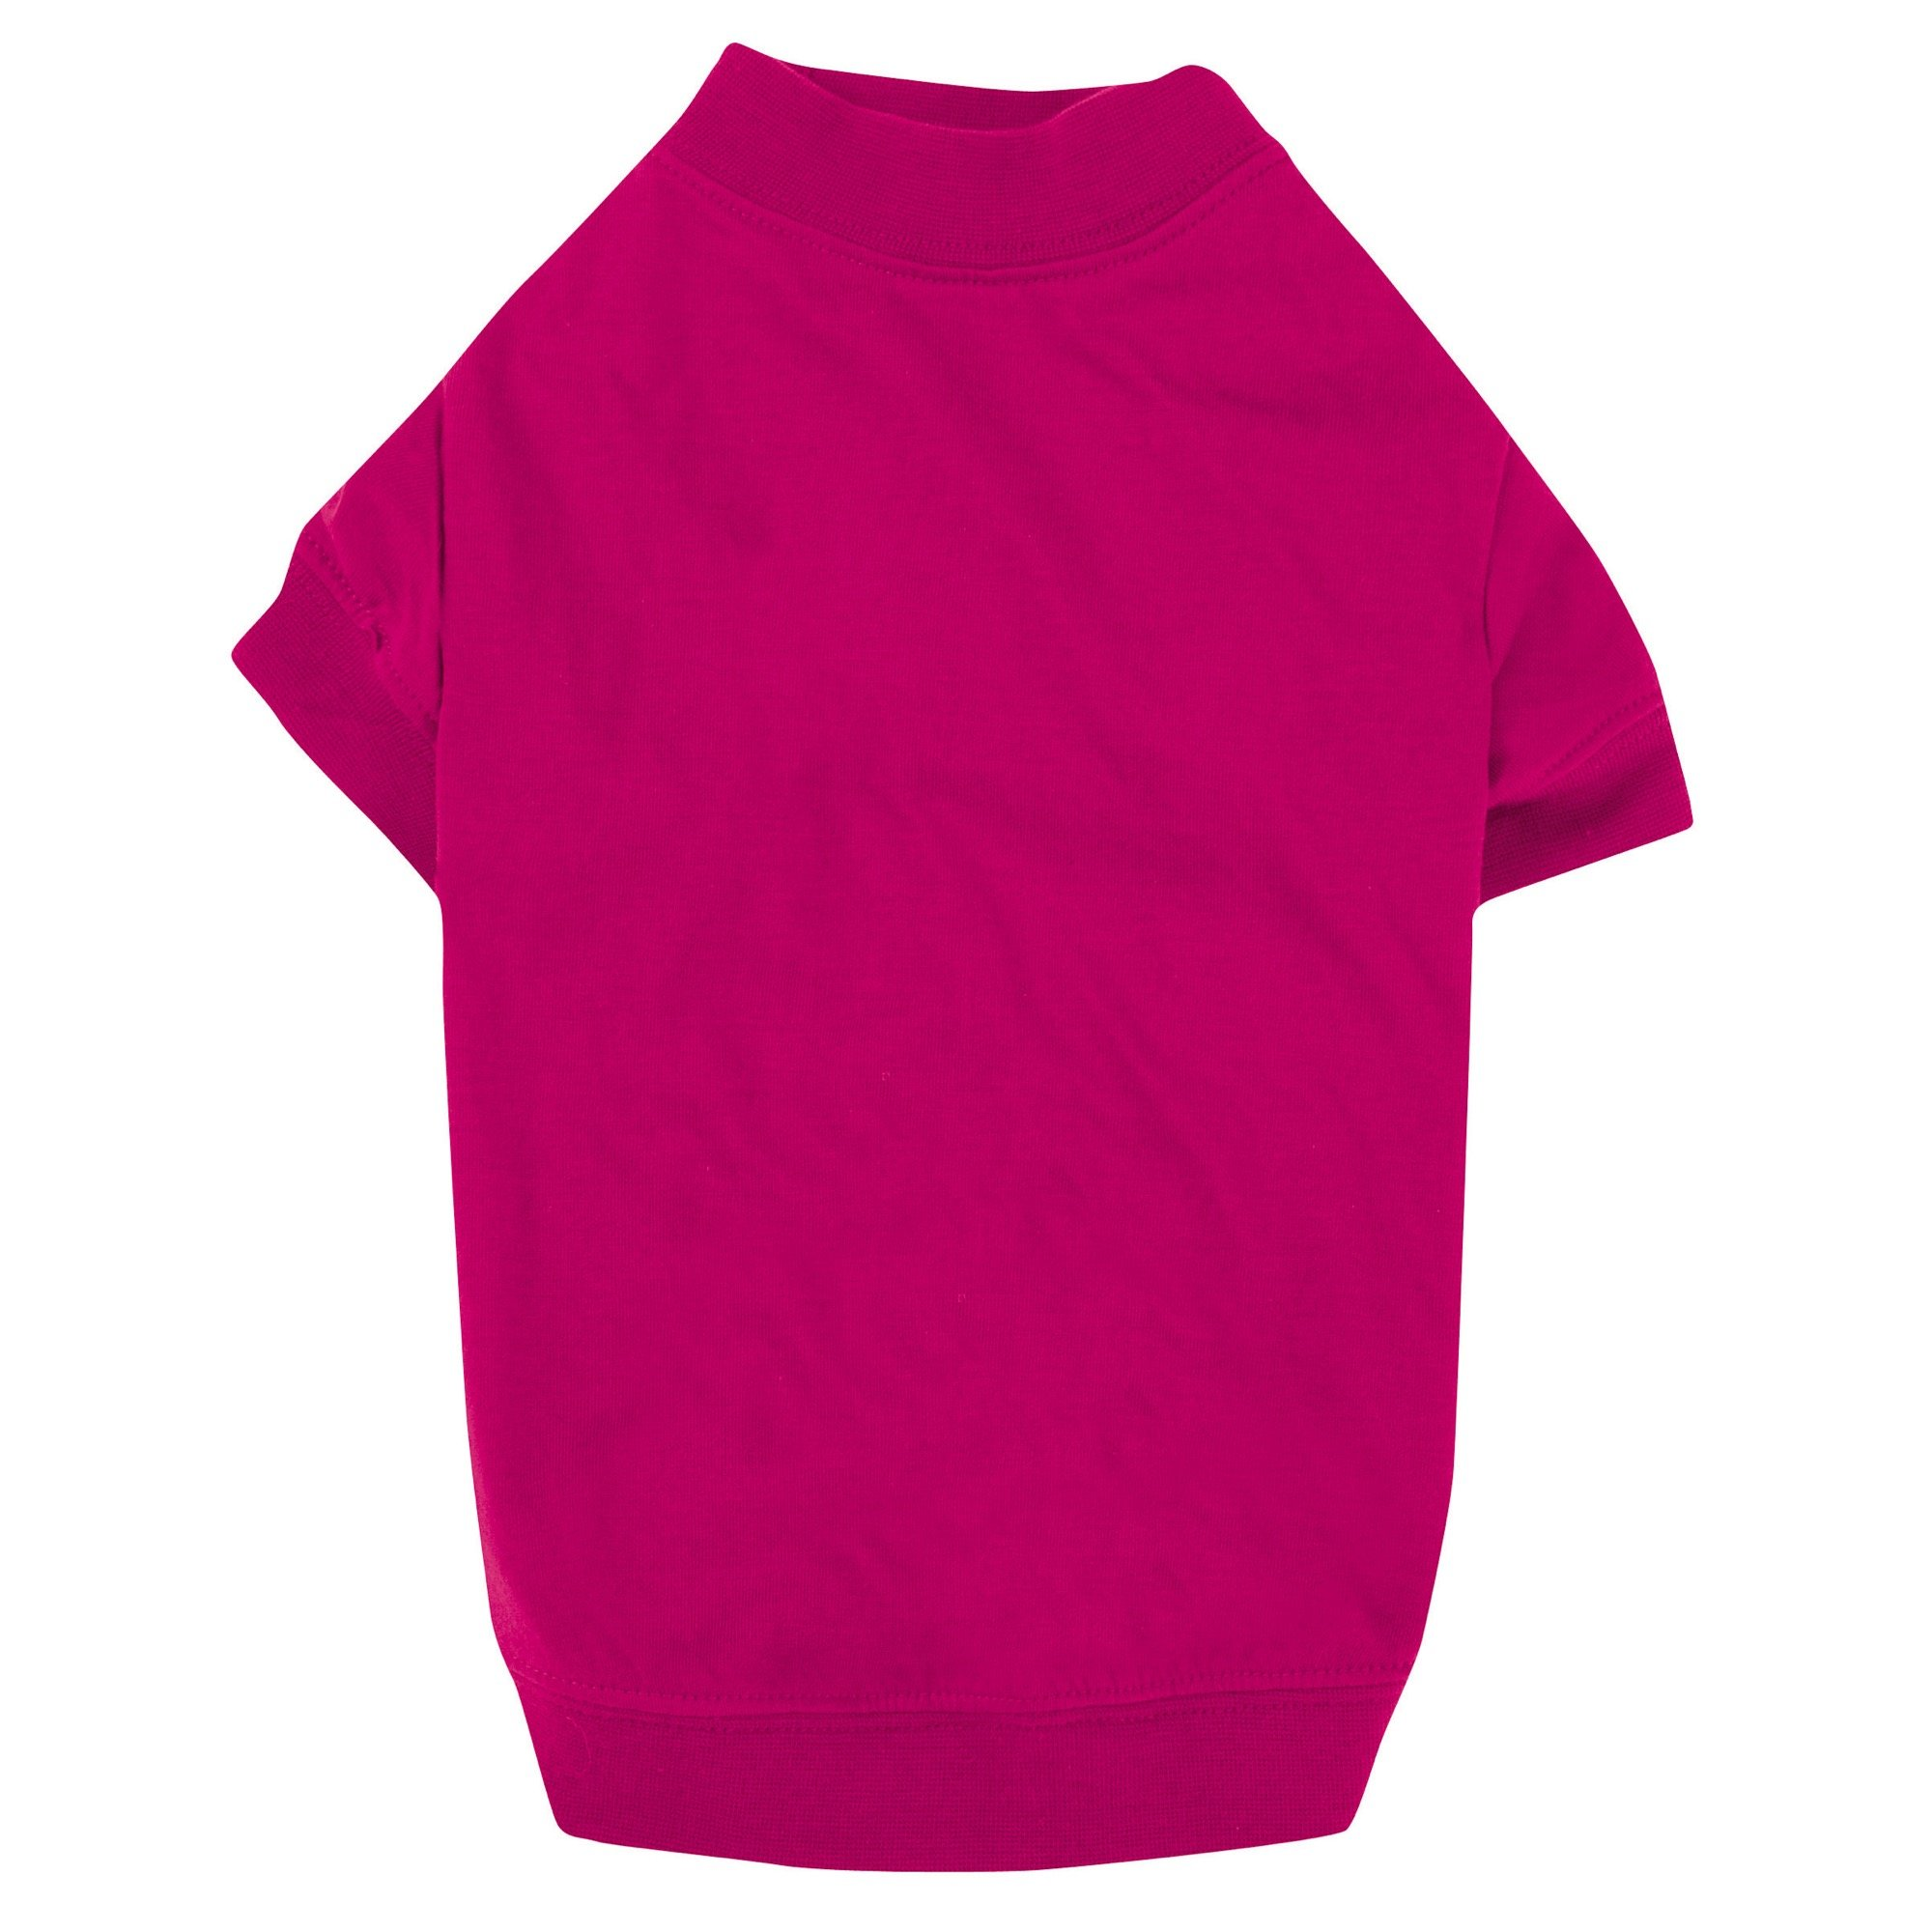 Zack & Zoey Basic Tee Shirt for Dogs, 20'' Large, Pink